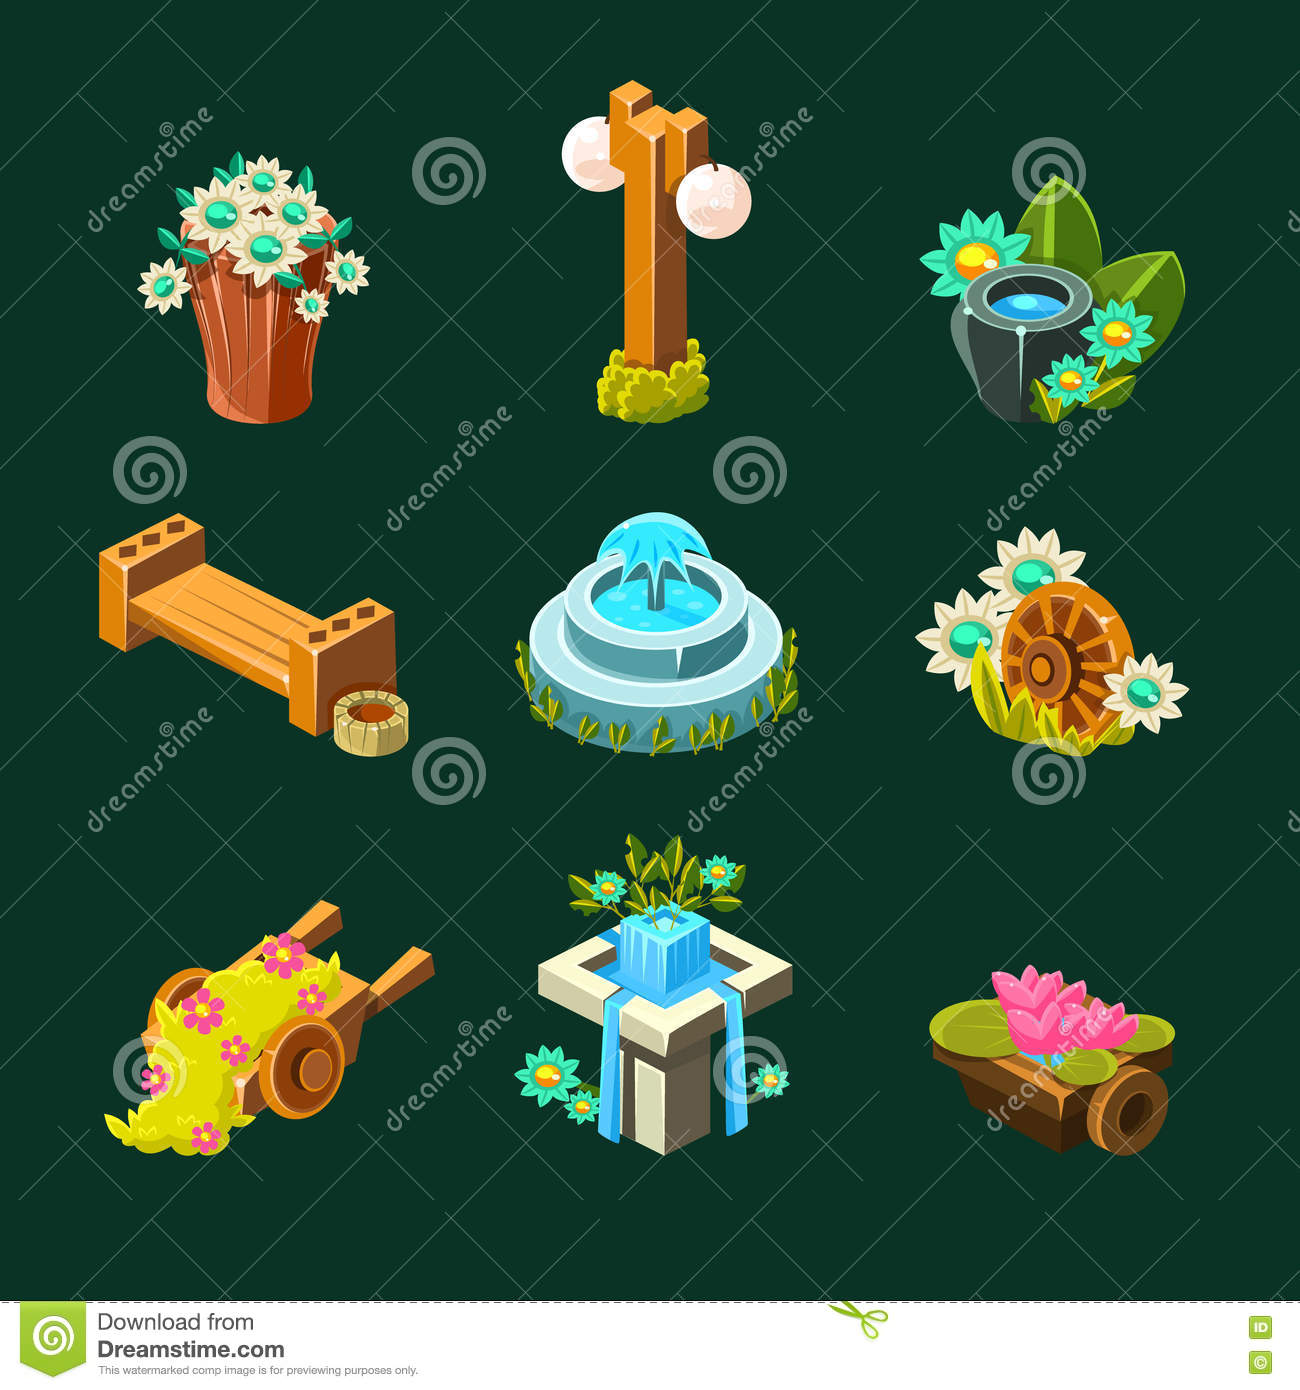 Garden Design Games Collection Video Game Garden Decoration Collection Of Elements Stock Vector .